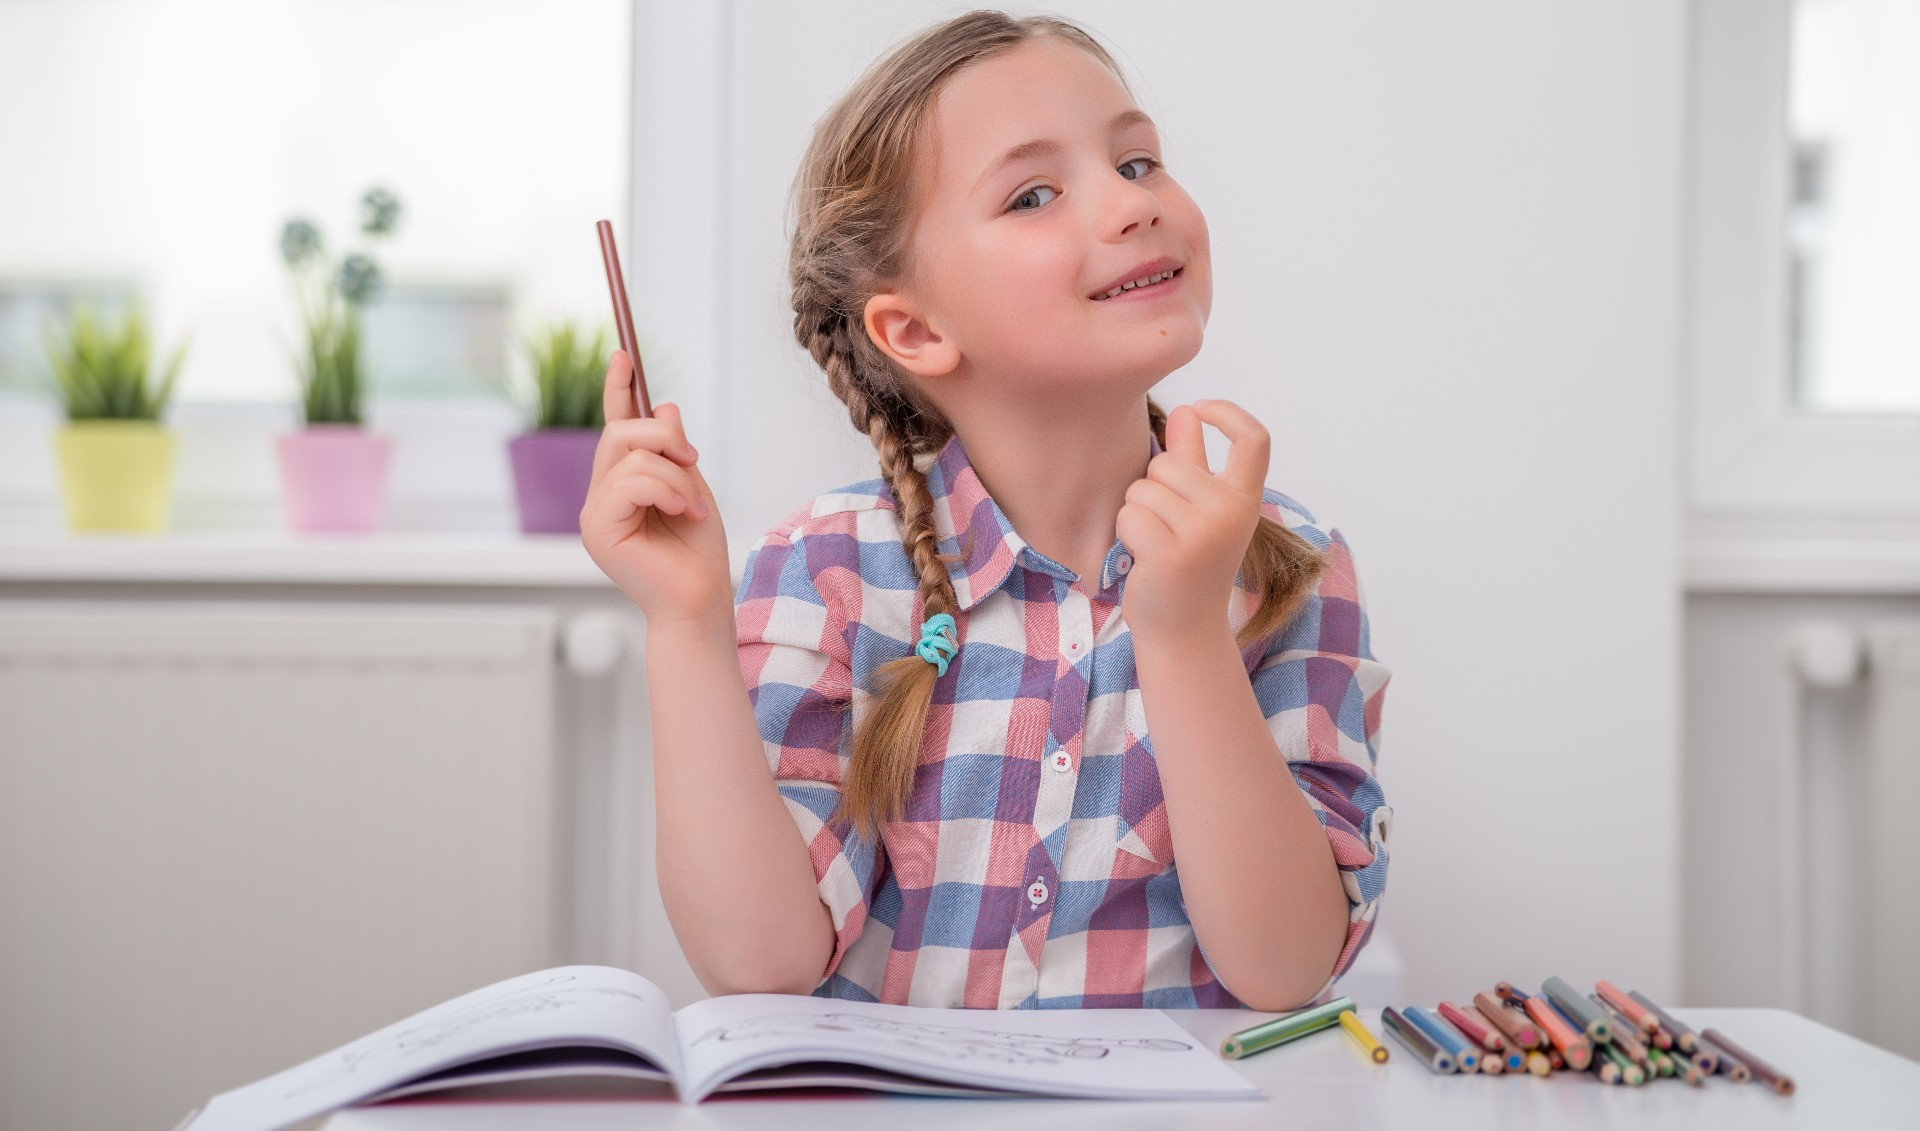 Small girl with a paper practicing problem solving